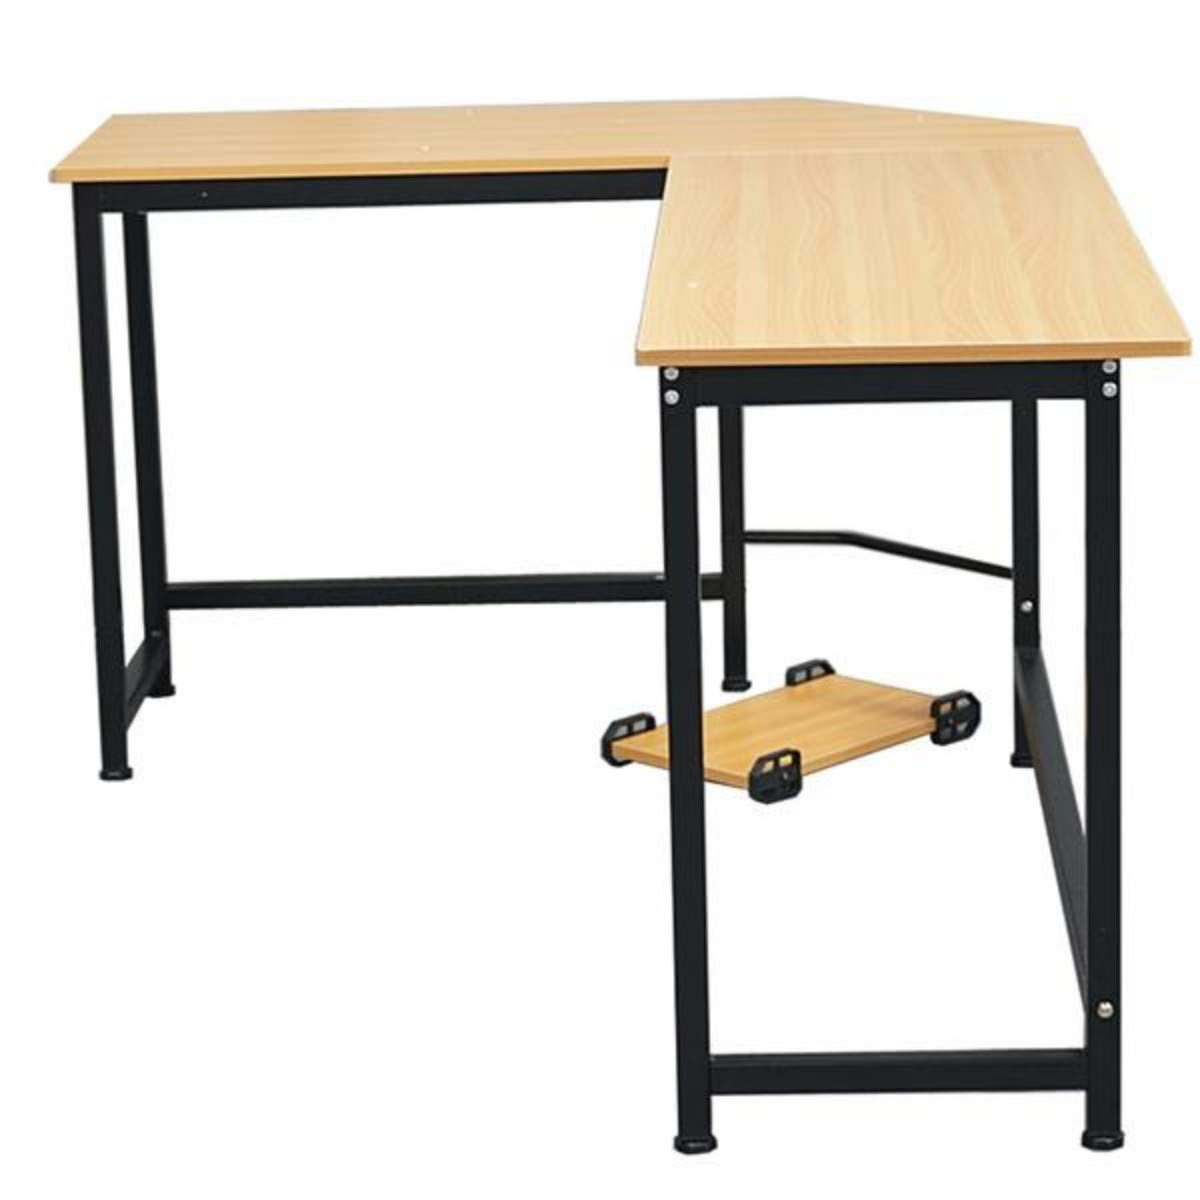 66inch Modern L-Shaped Desk Corner Computer Desk with CPU Stand, PC Latop Study Table Home Office Workstation Wood Color